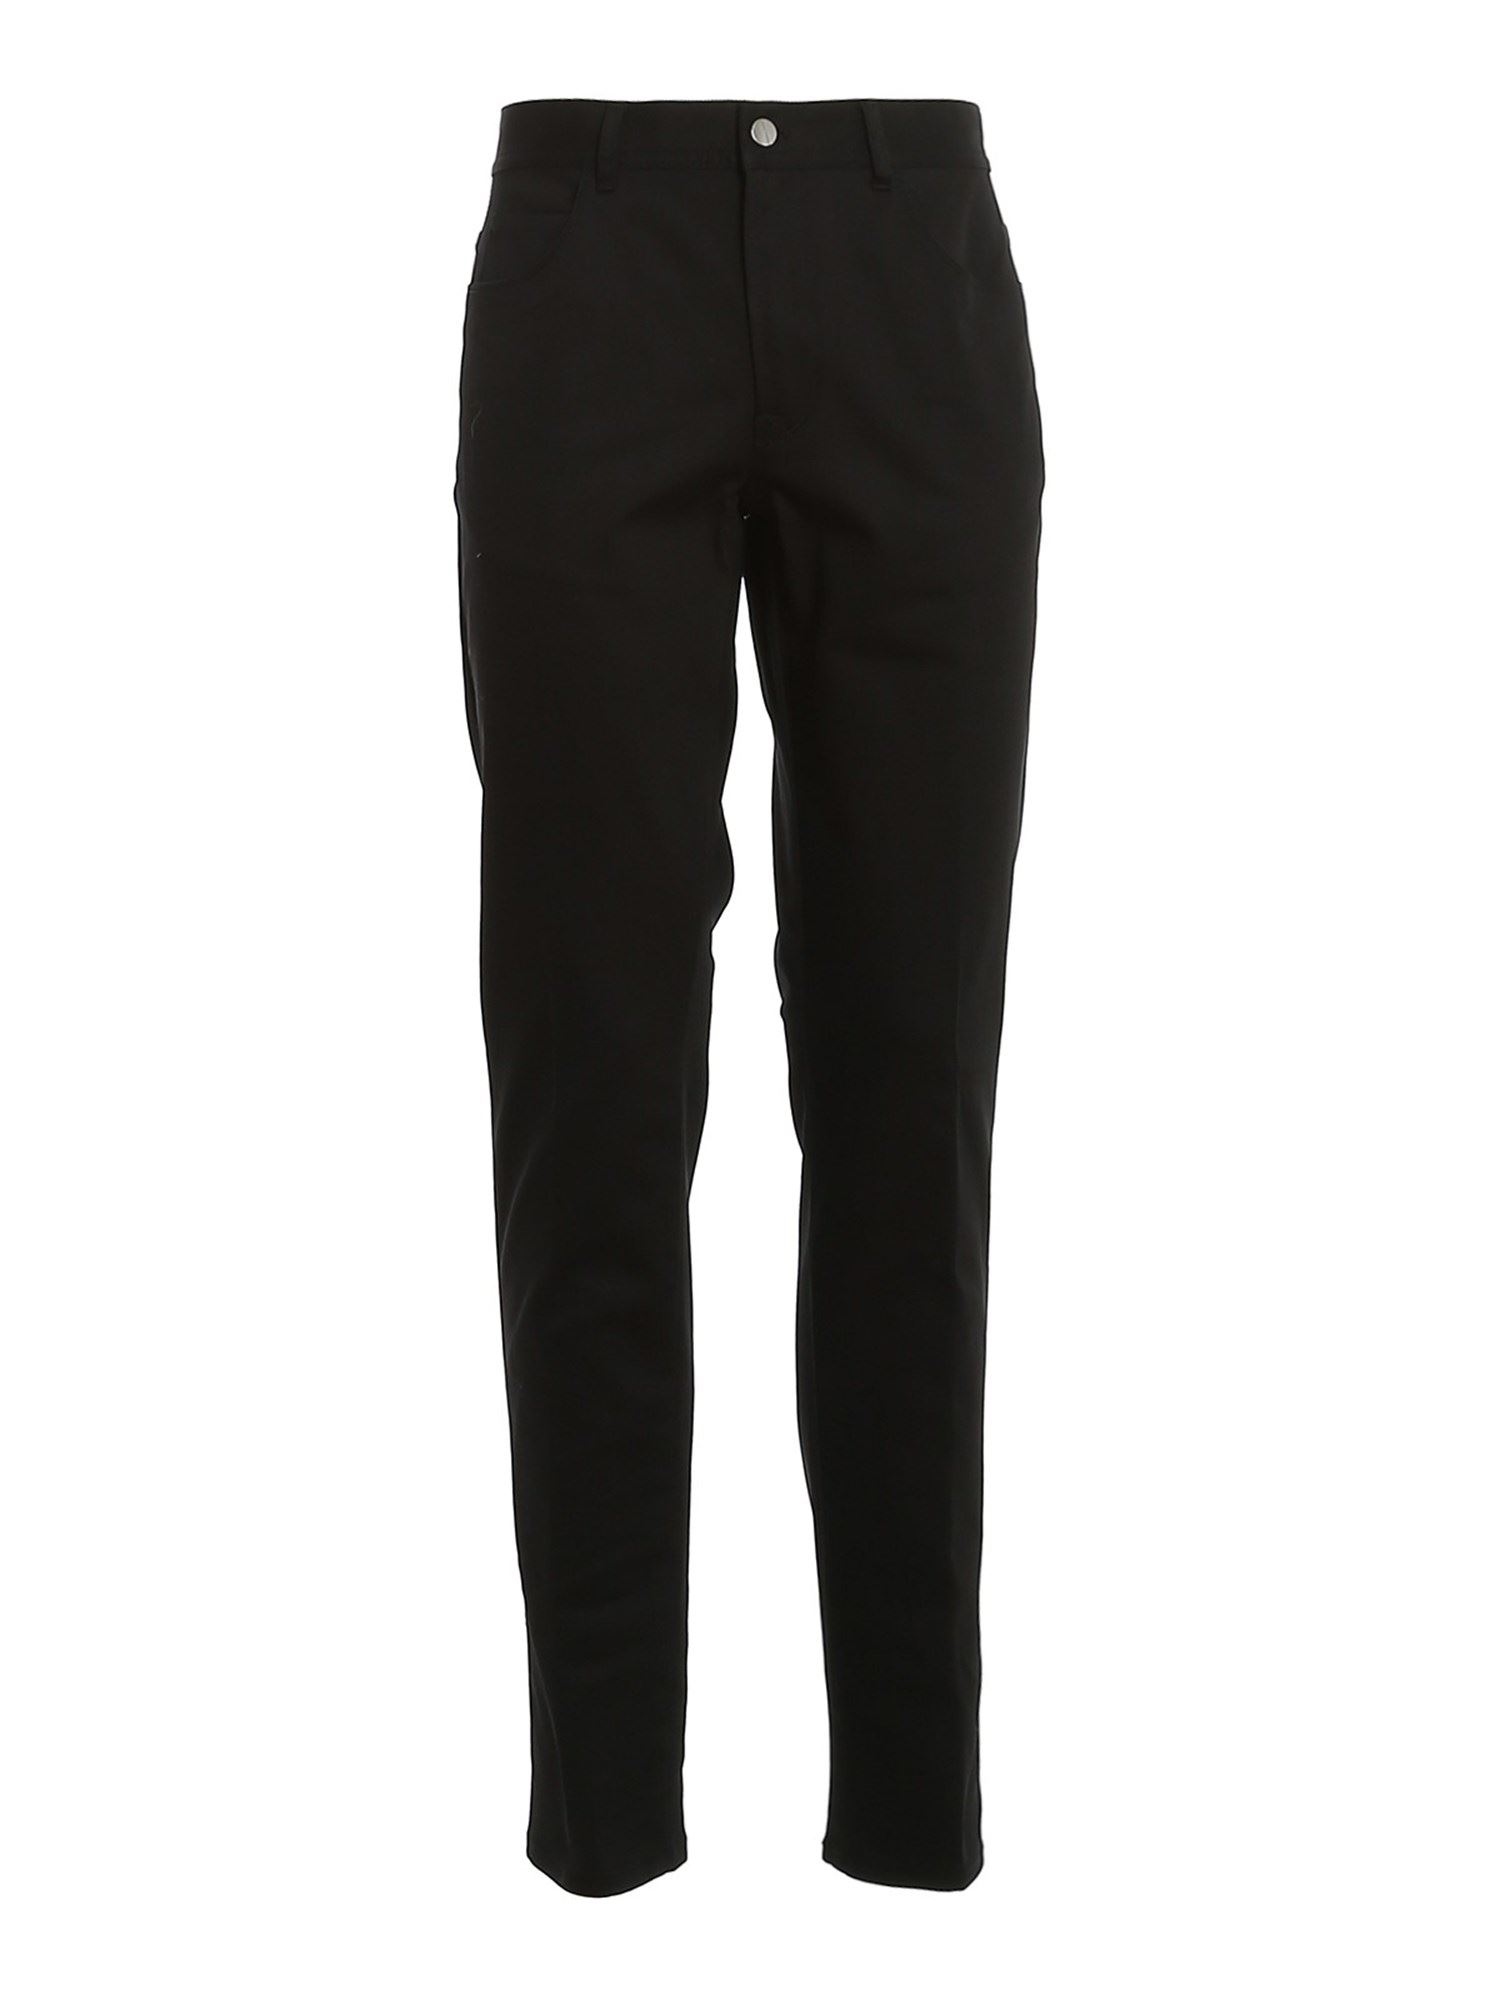 MONCLER GABARDINE PANTS IN BLACK